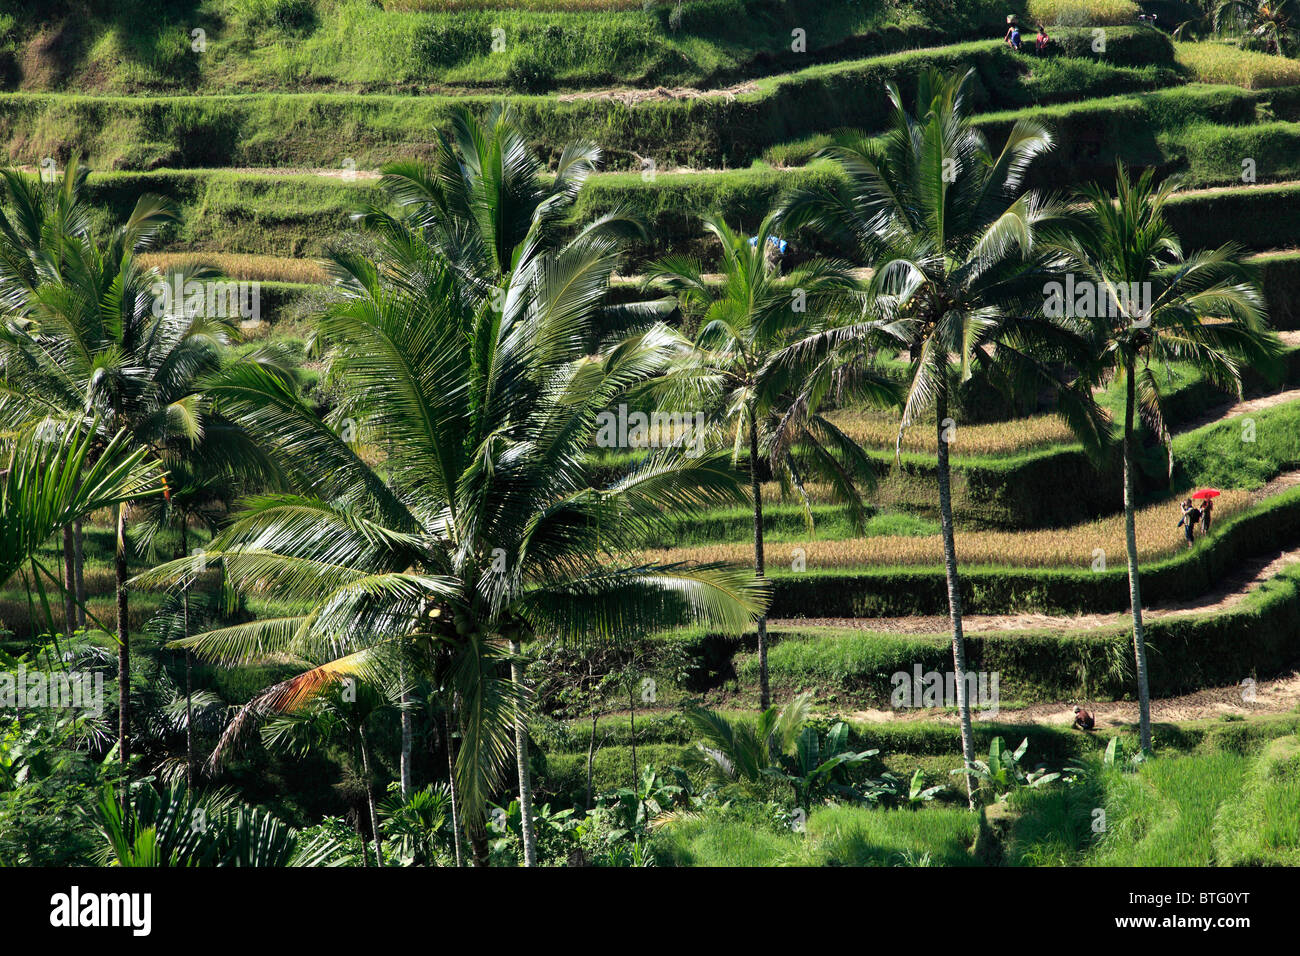 Indonesia, Bali, Tegallalang, rice fields, landscape, - Stock Image